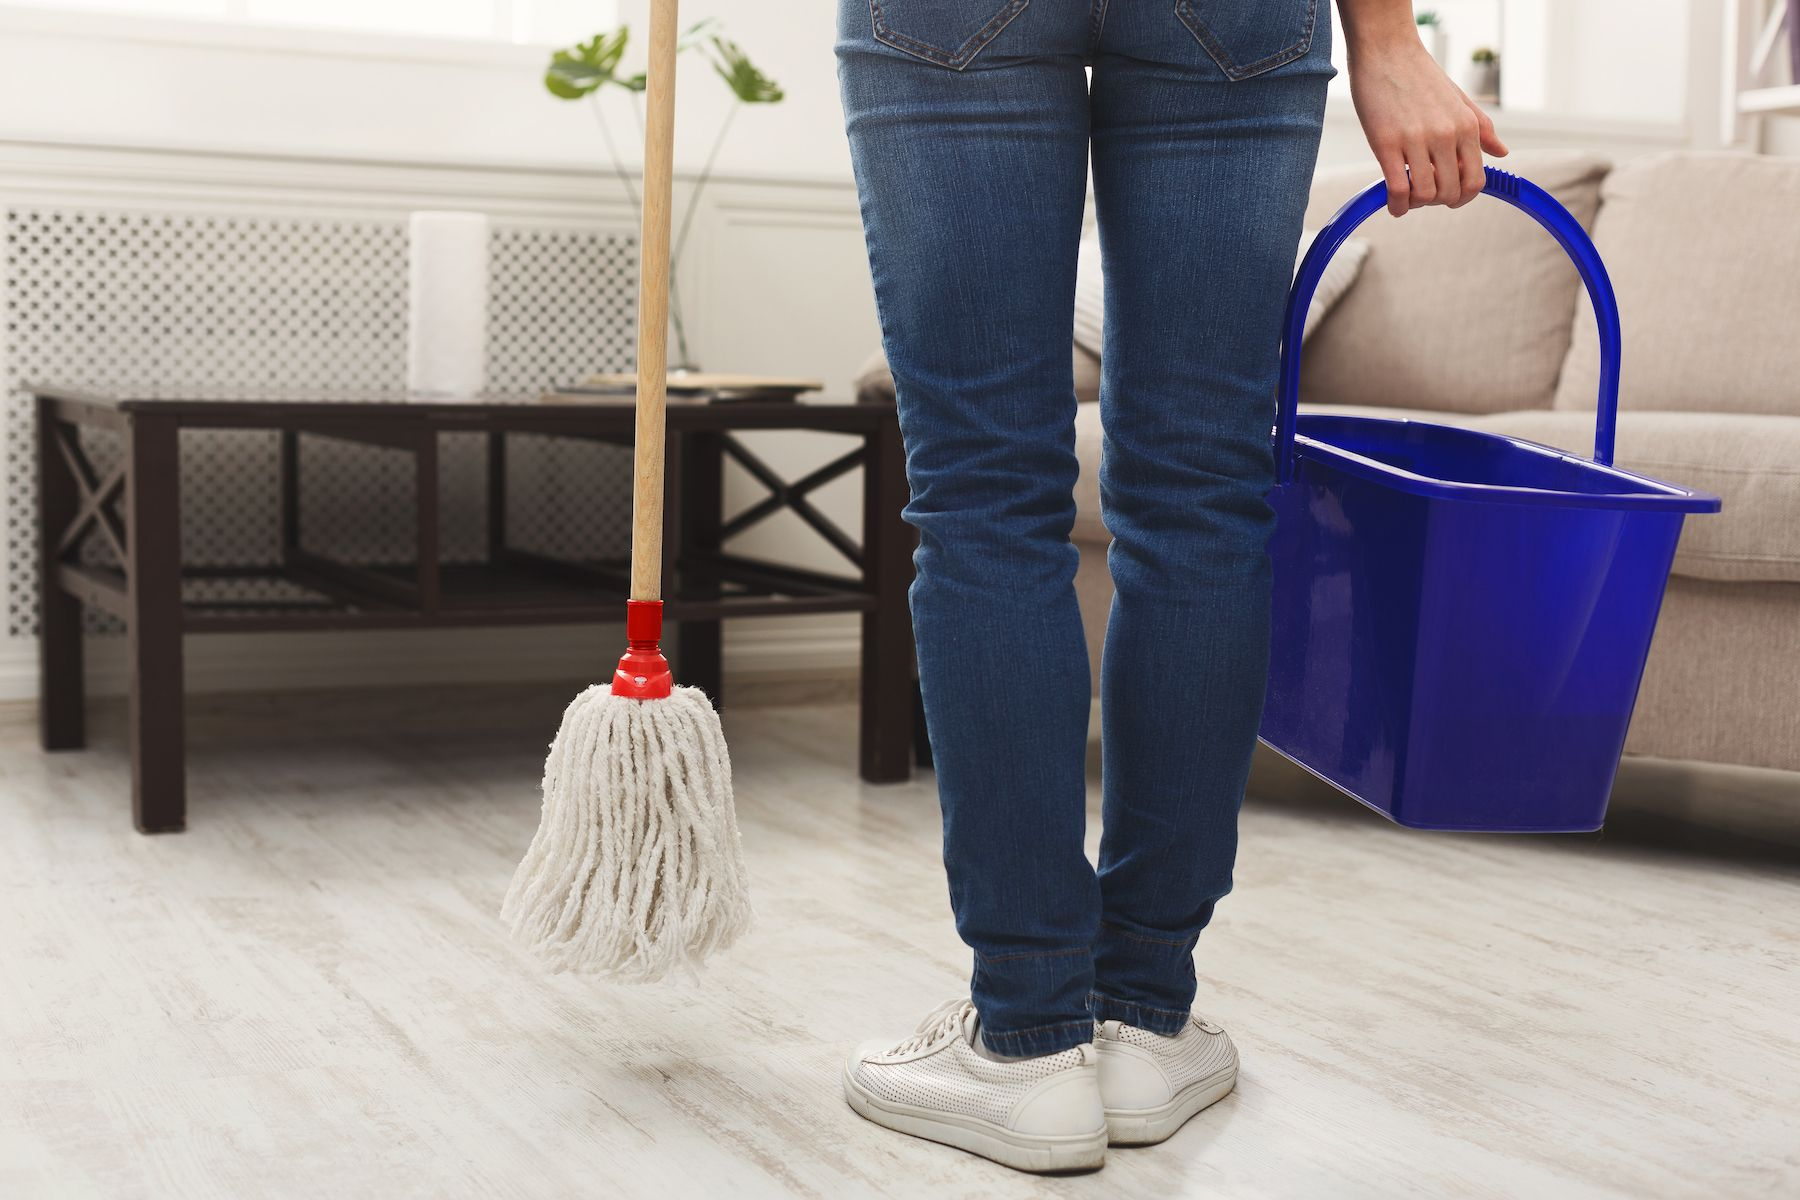 Are you looking for the best carpet cleaning in adeyfield